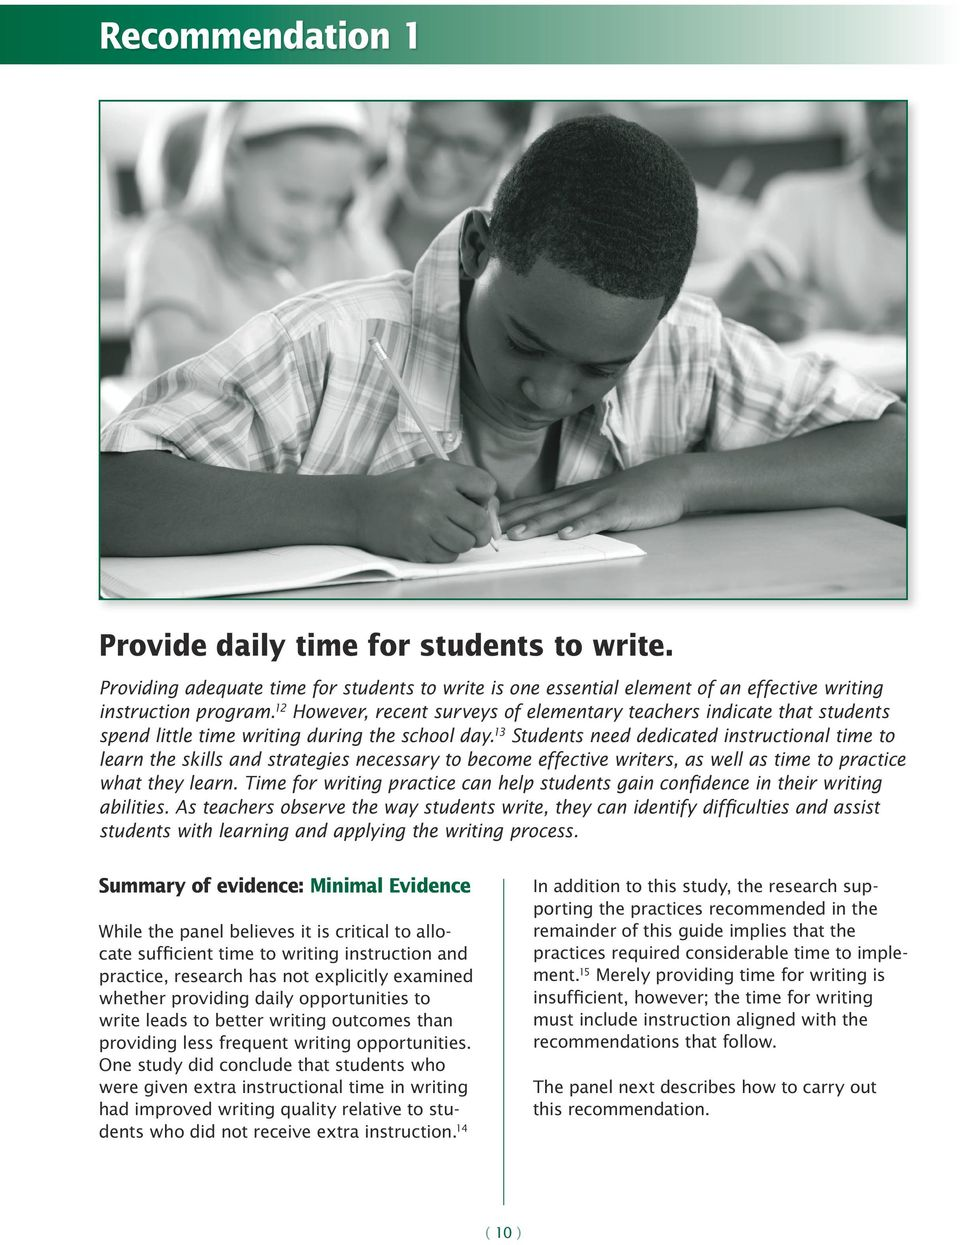 13 Students need dedicated instructional time to learn the skills and strategies necessary to become effective writers, as well as time to practice what they learn.